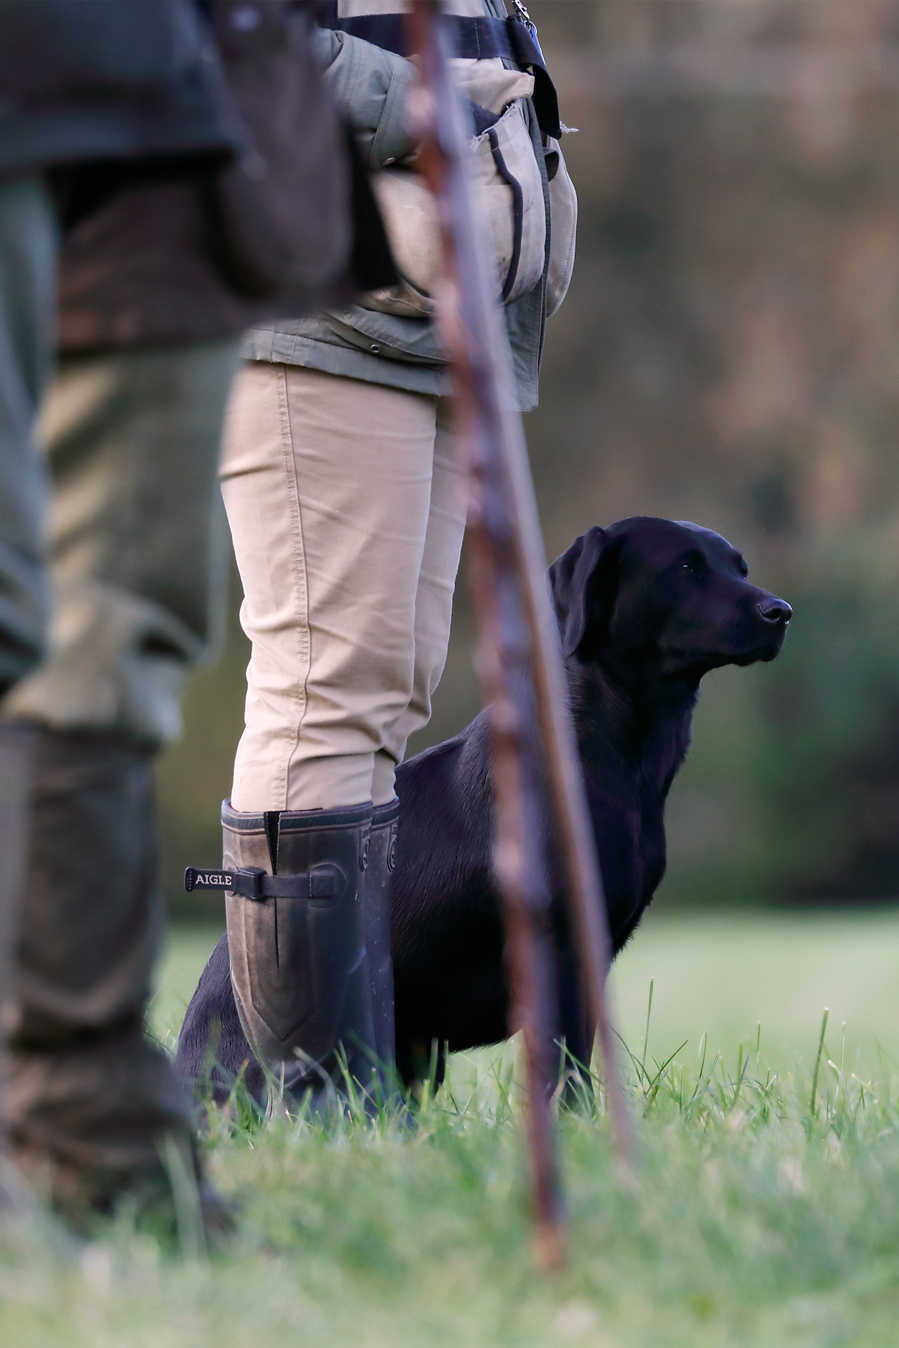 Field sports photography. Competitor awaits judges direction for next retrieve during a field trial